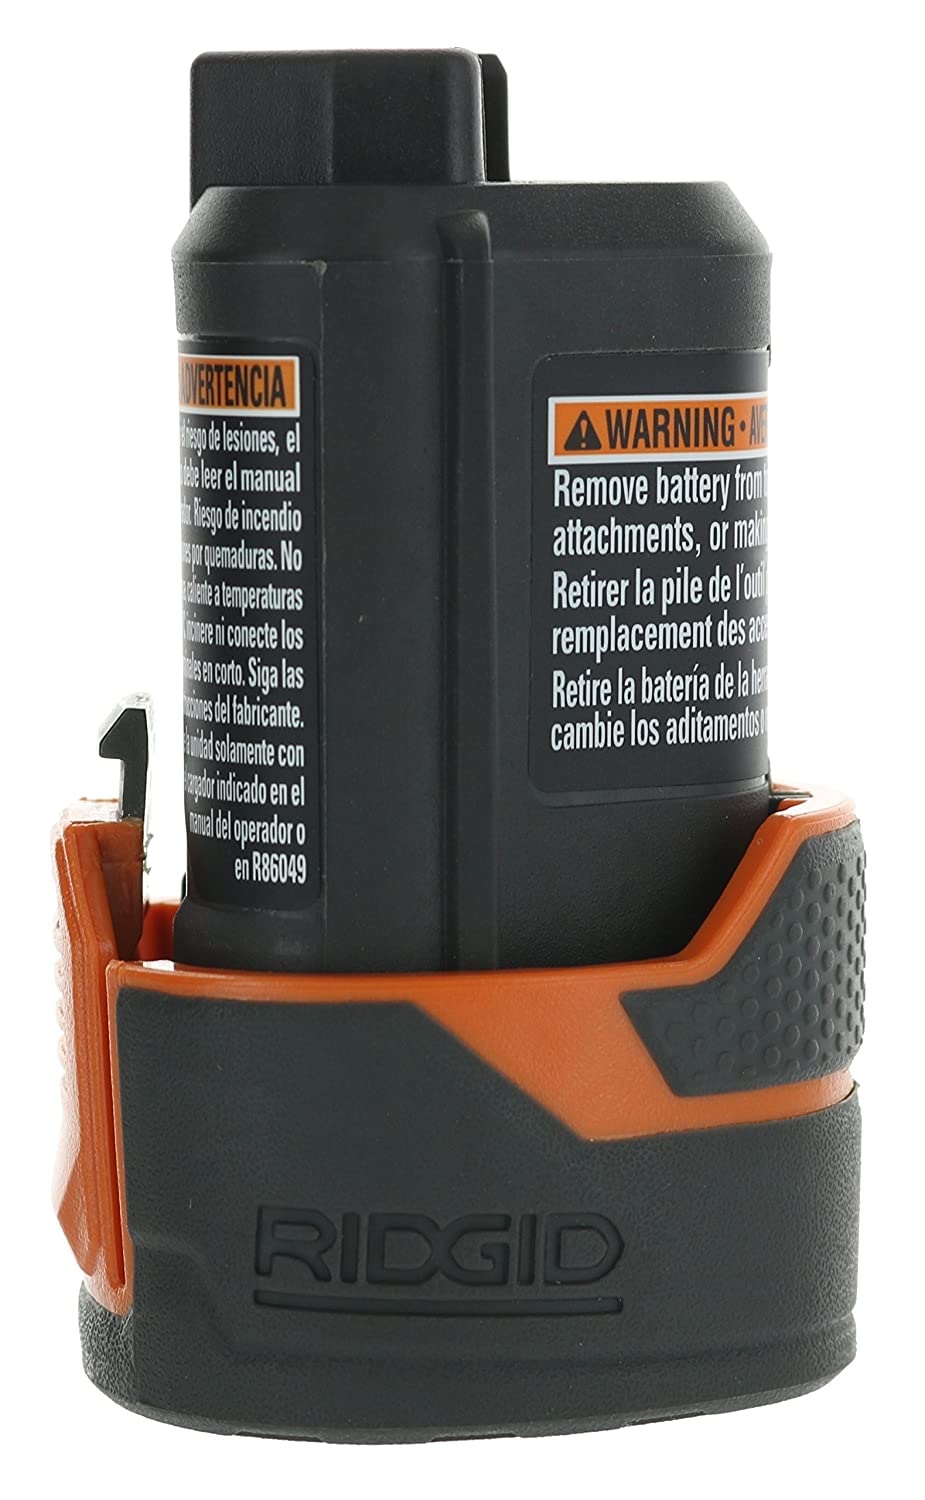 Ridgid AC82049 Genuine OEM Compact Hyper Lithium Ion 2.0 Amp Hour 12V Battery (Certified Refurbished) - - Amazon.com